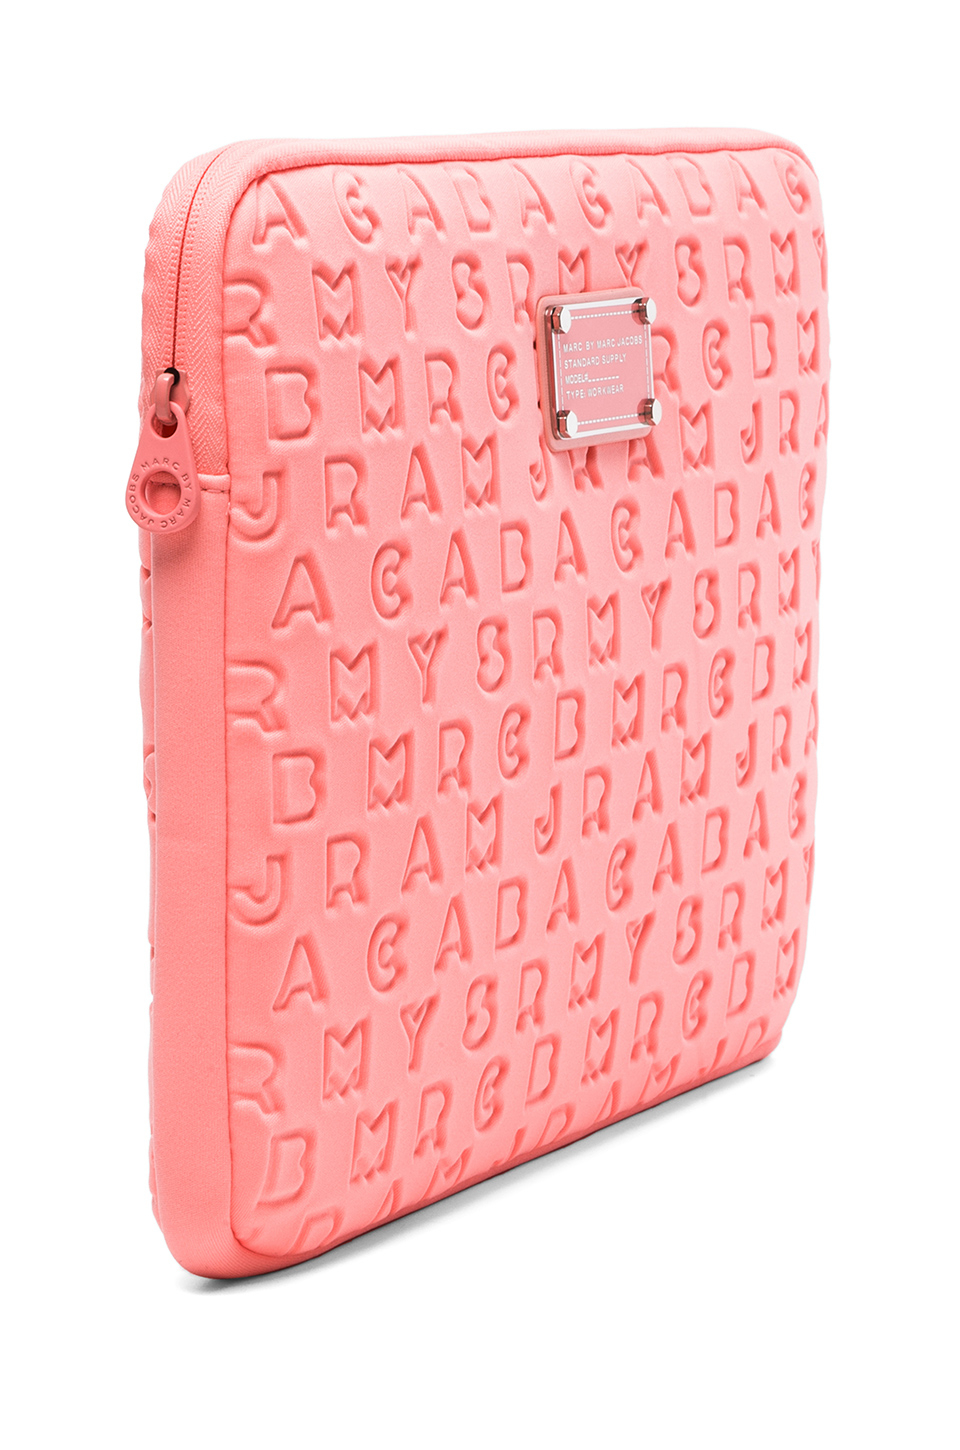 13 Computer Case Marc Jacobs p1Cml1AxbK